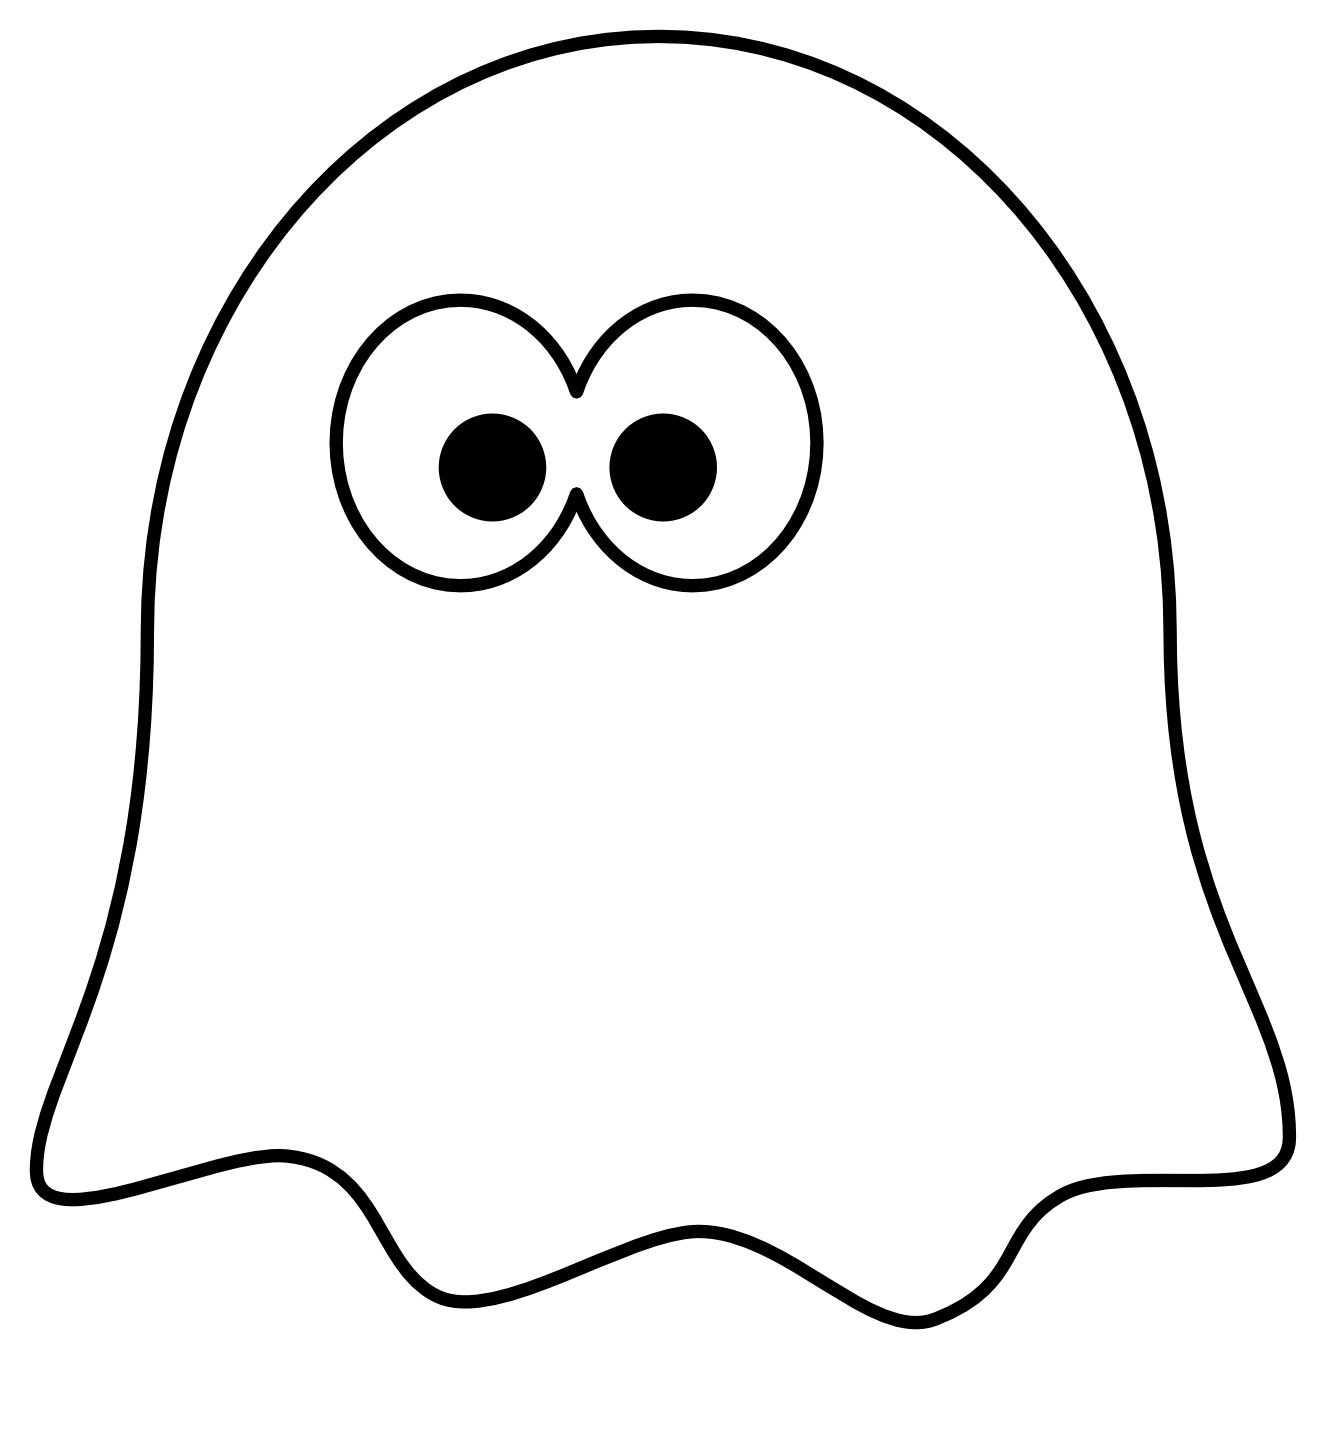 Ghost clipart cartoon, Ghost cartoon Transparent FREE for.